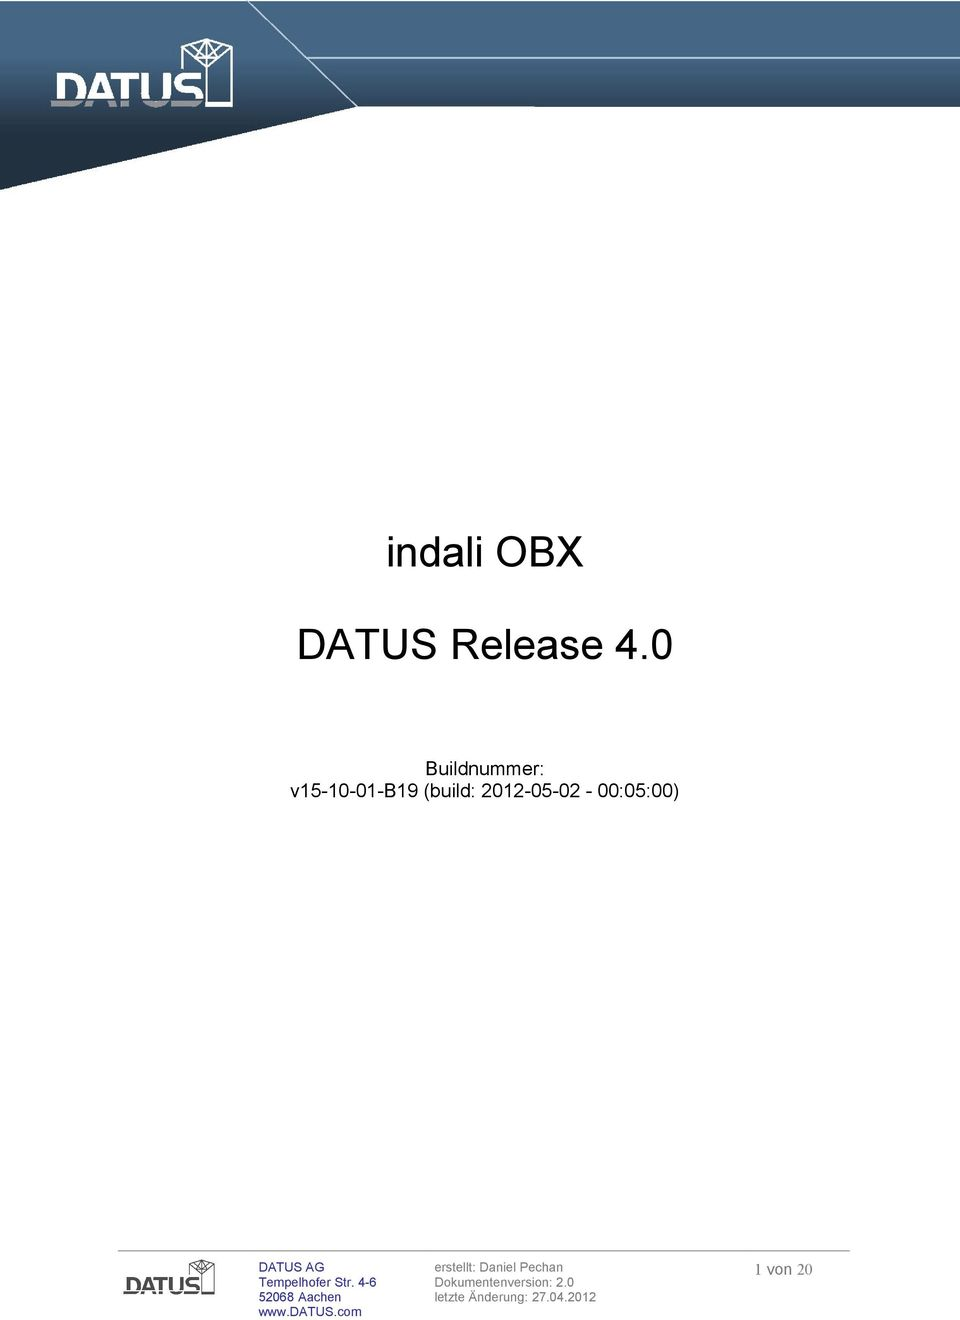 2 indali OBX DATUS Release 4.